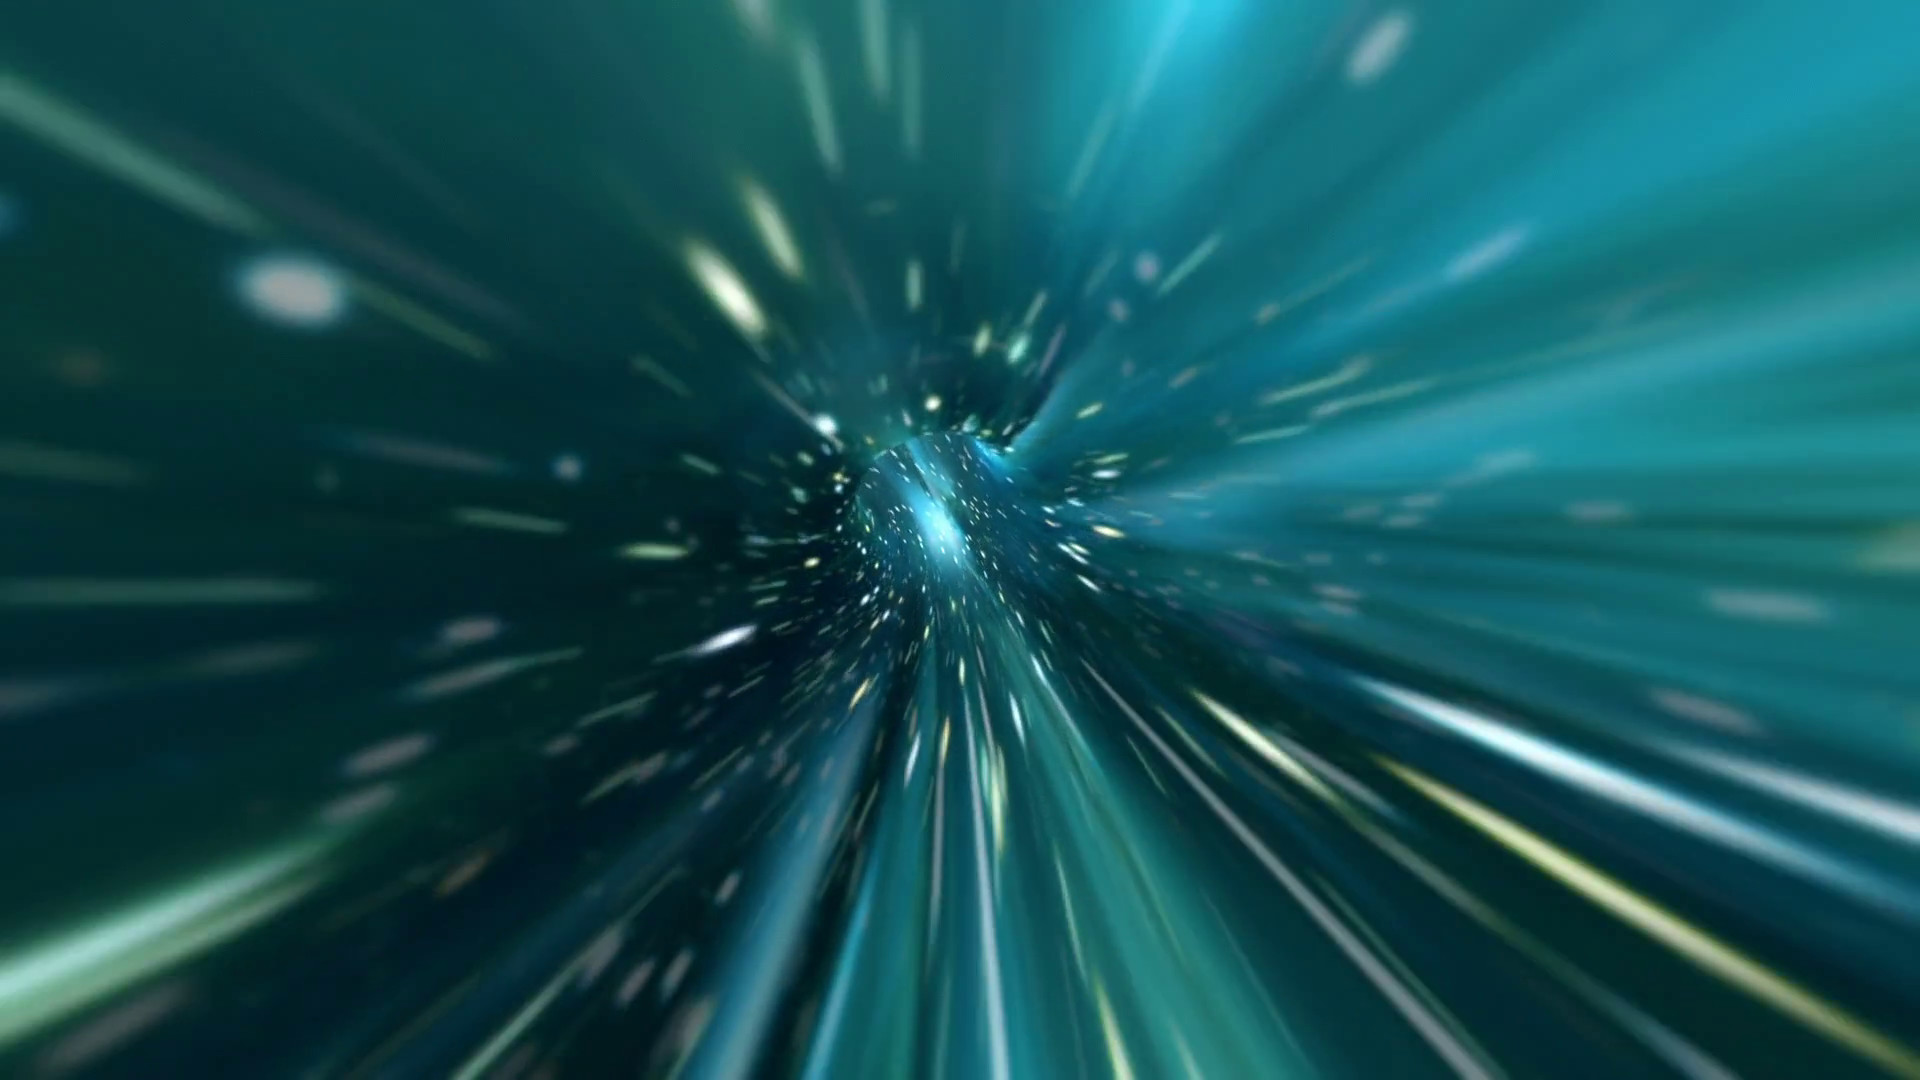 1920x1080 Traveling Through Time Vortex Portal Tunnel at Faster Than Light Speed War  Drive Seamless Looping Motion Background Full HD Motion Background -  Storyblocks ...